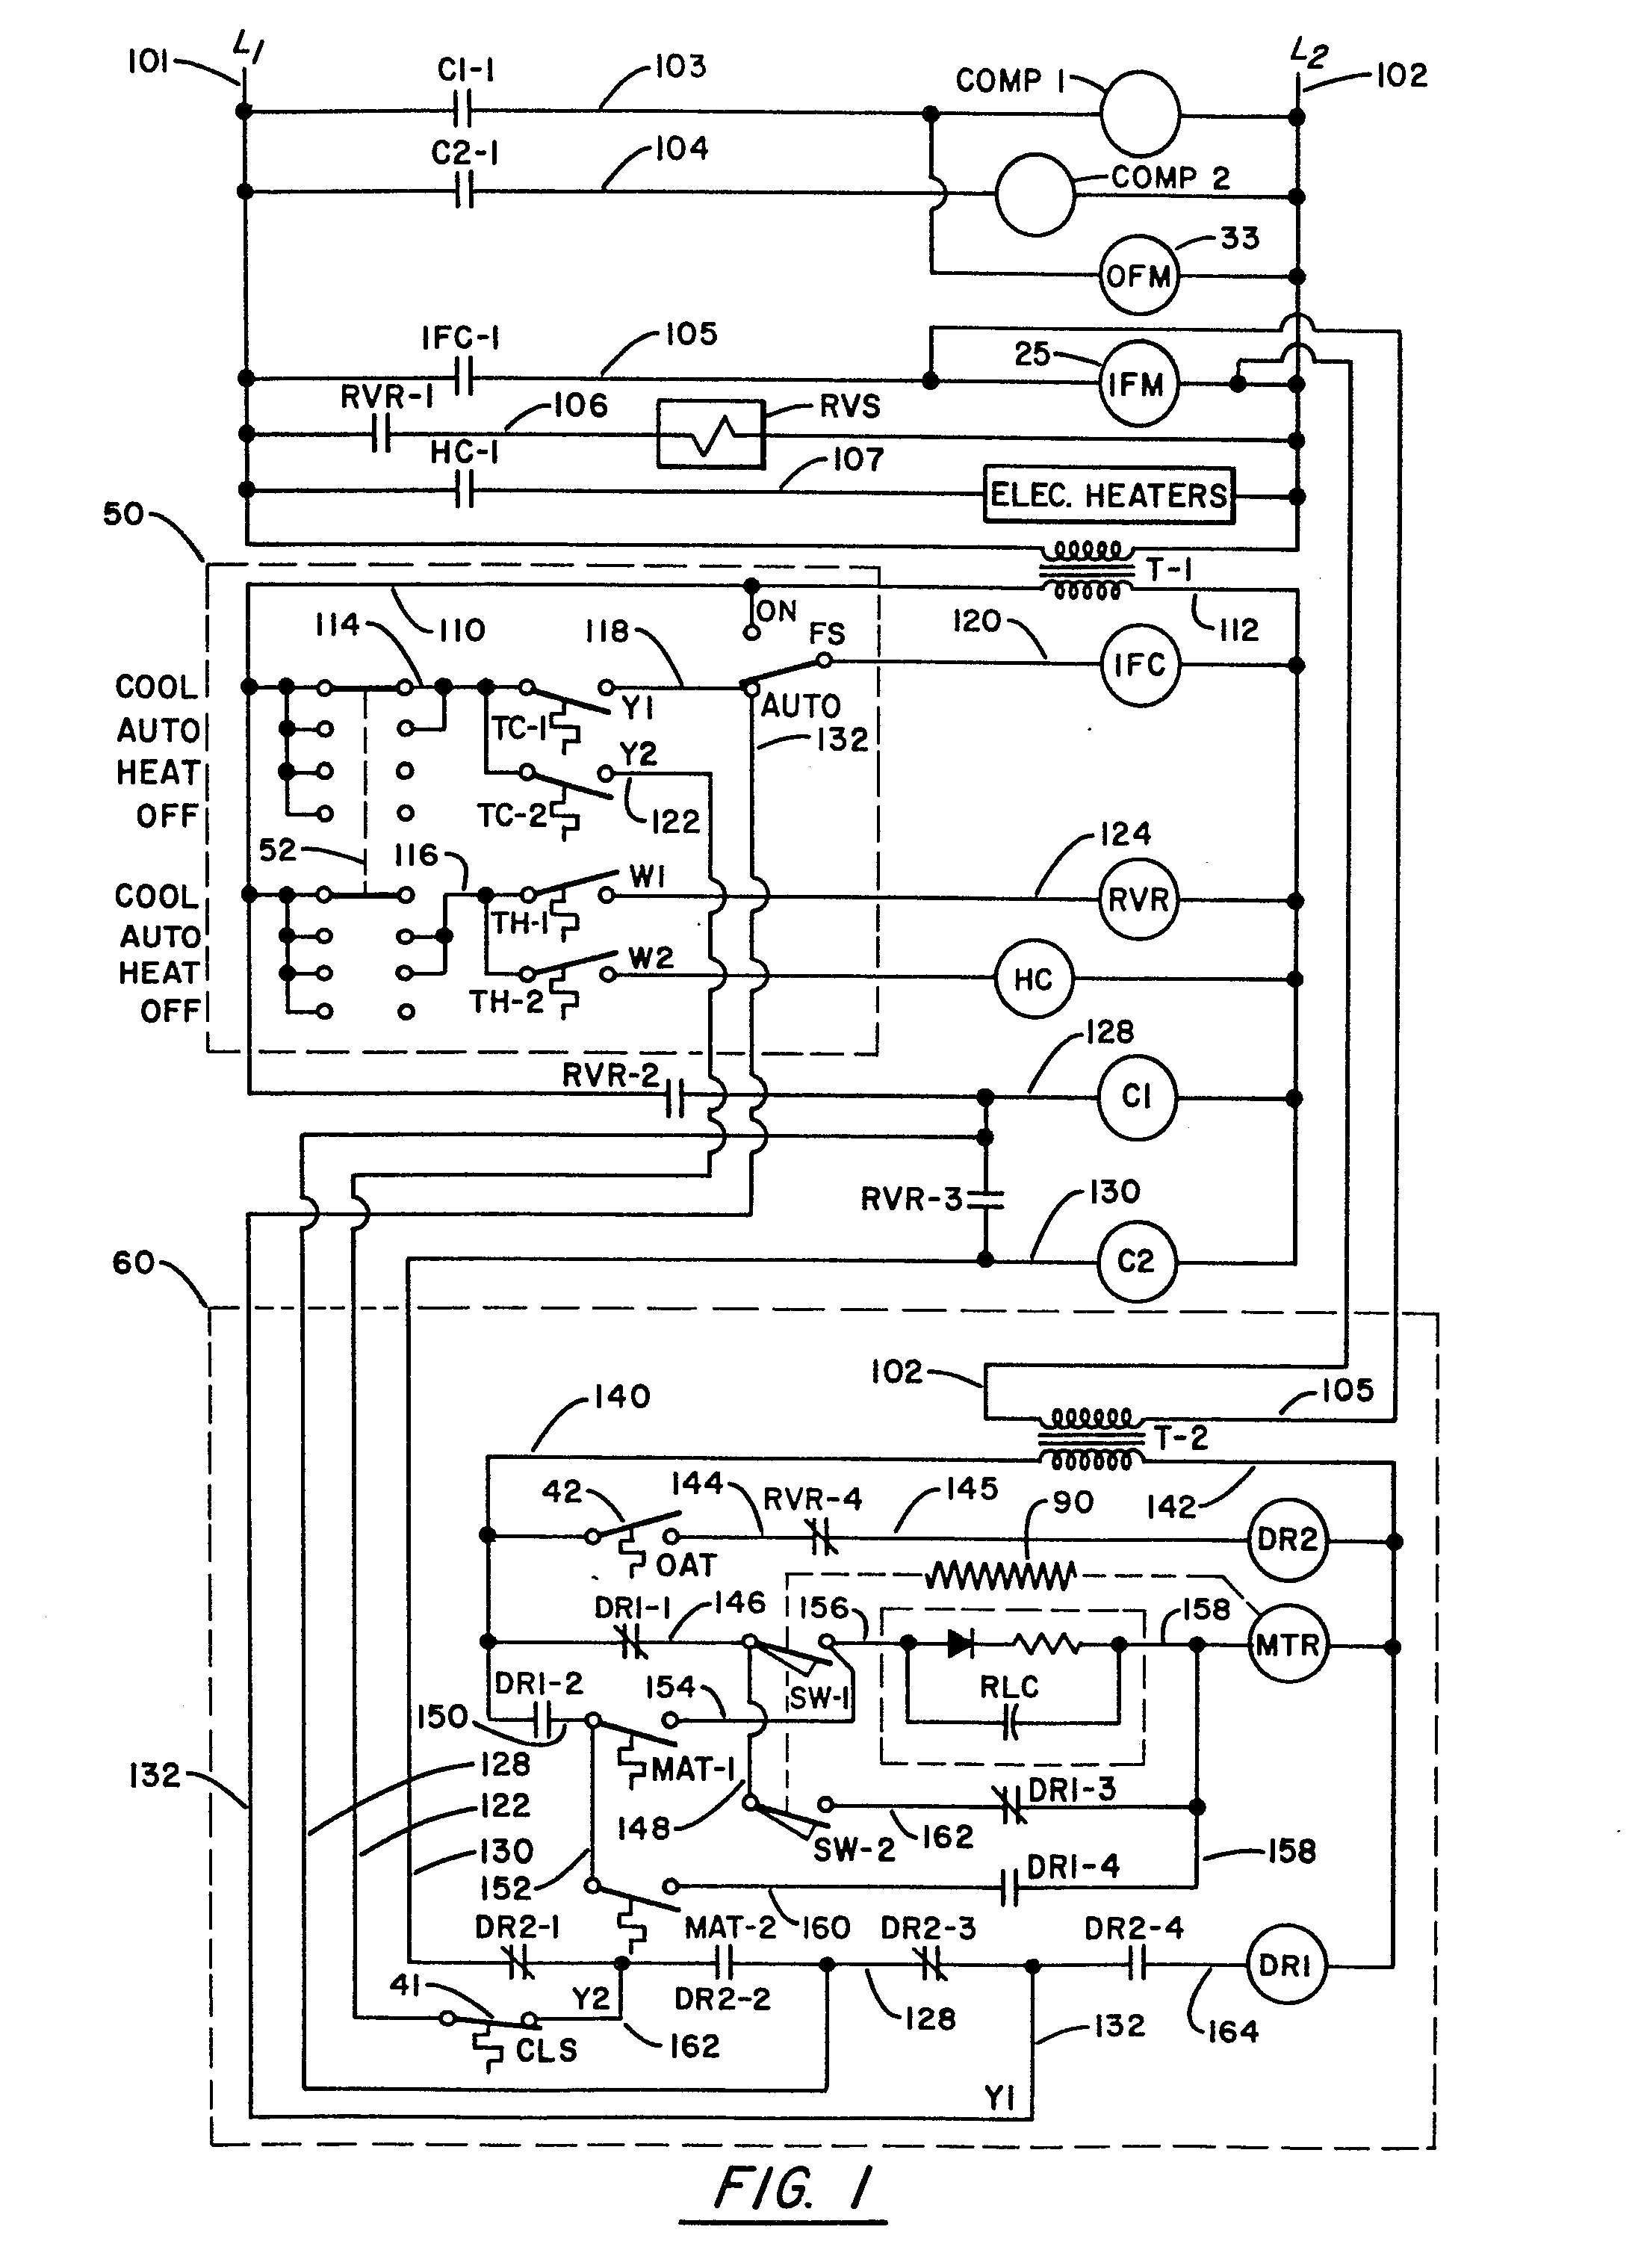 aaon rooftop units wiring diagram gallery whirlpool air conditioner wiring diagram rooftop air conditioner wiring diagram